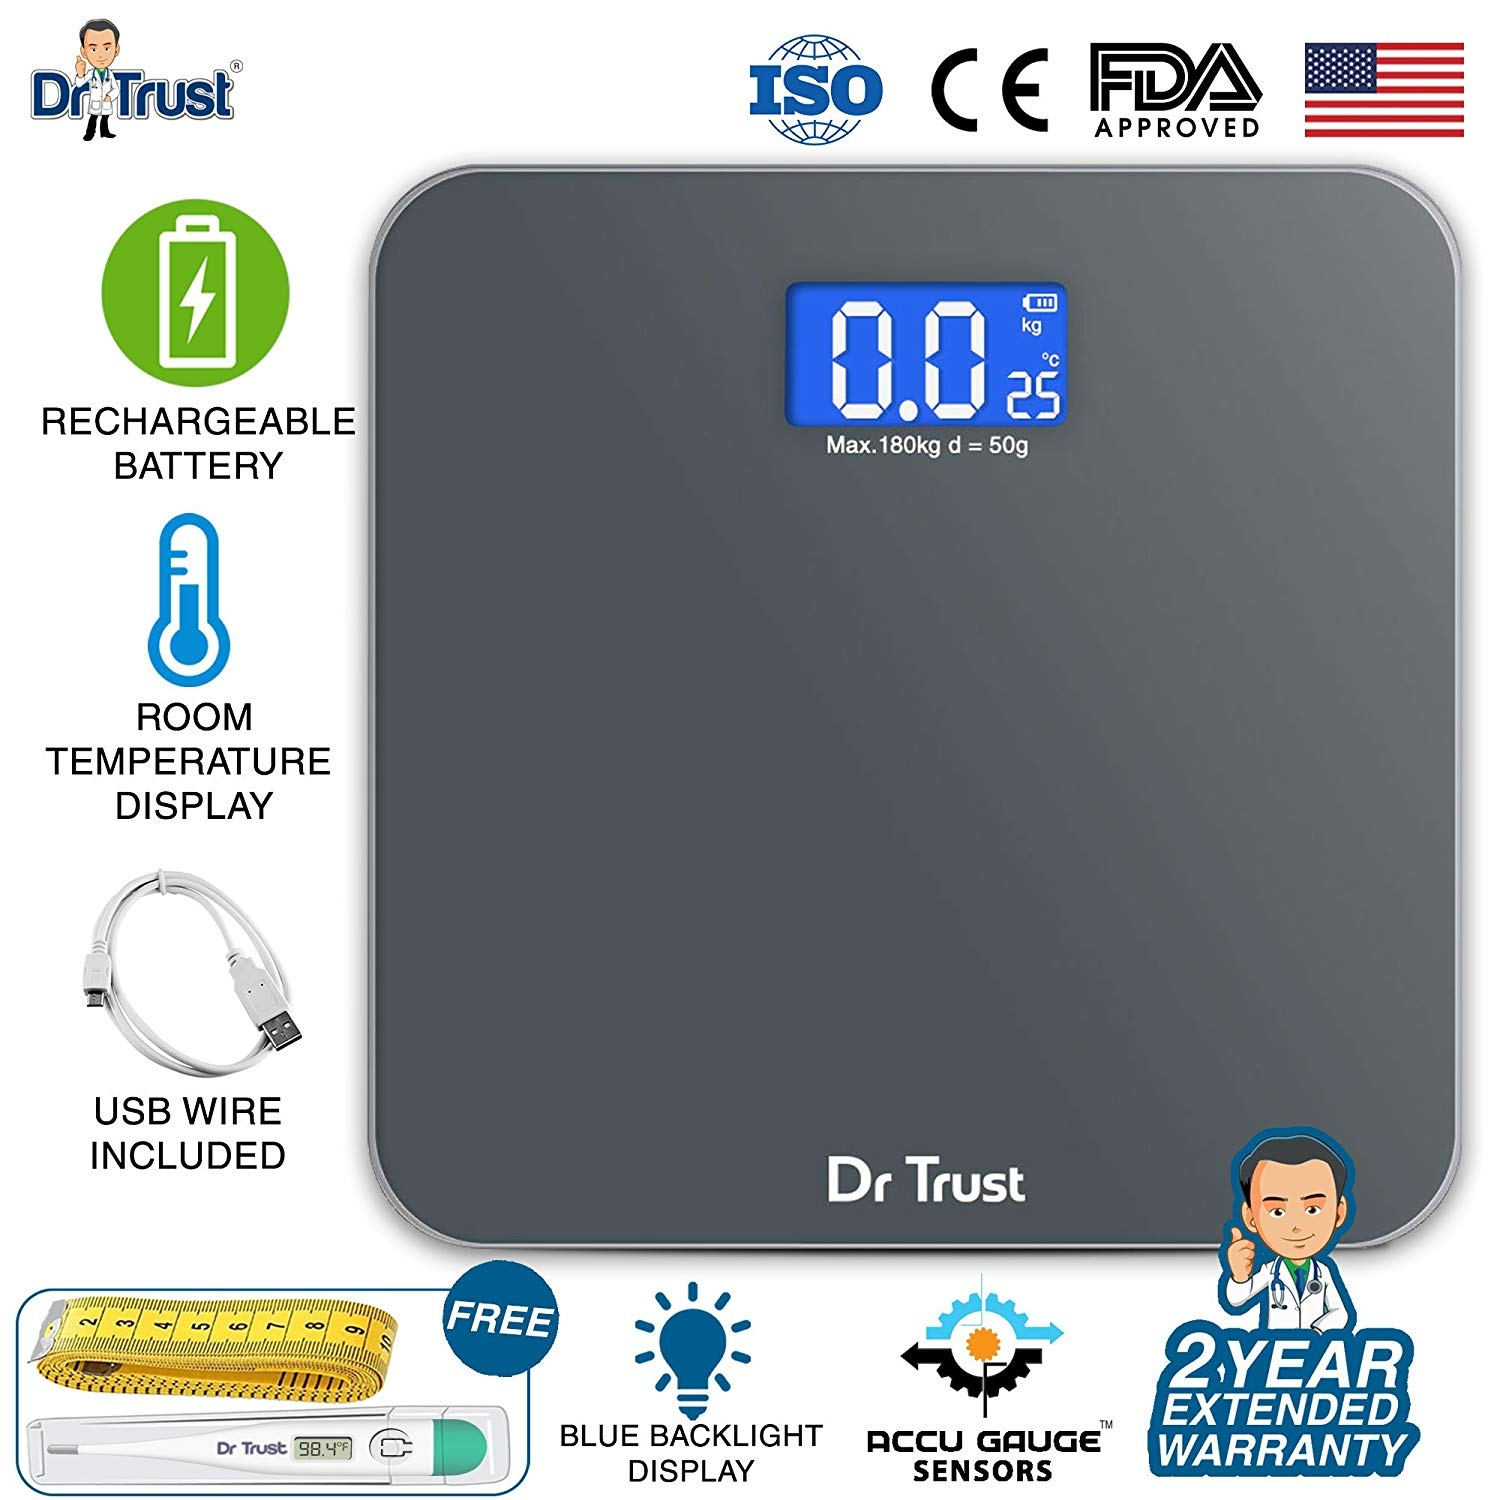 Dr. Trust (USA) Electronic Zen Rechargeable Digital Personal Weighing Scale with Temperature Display - Grey-0